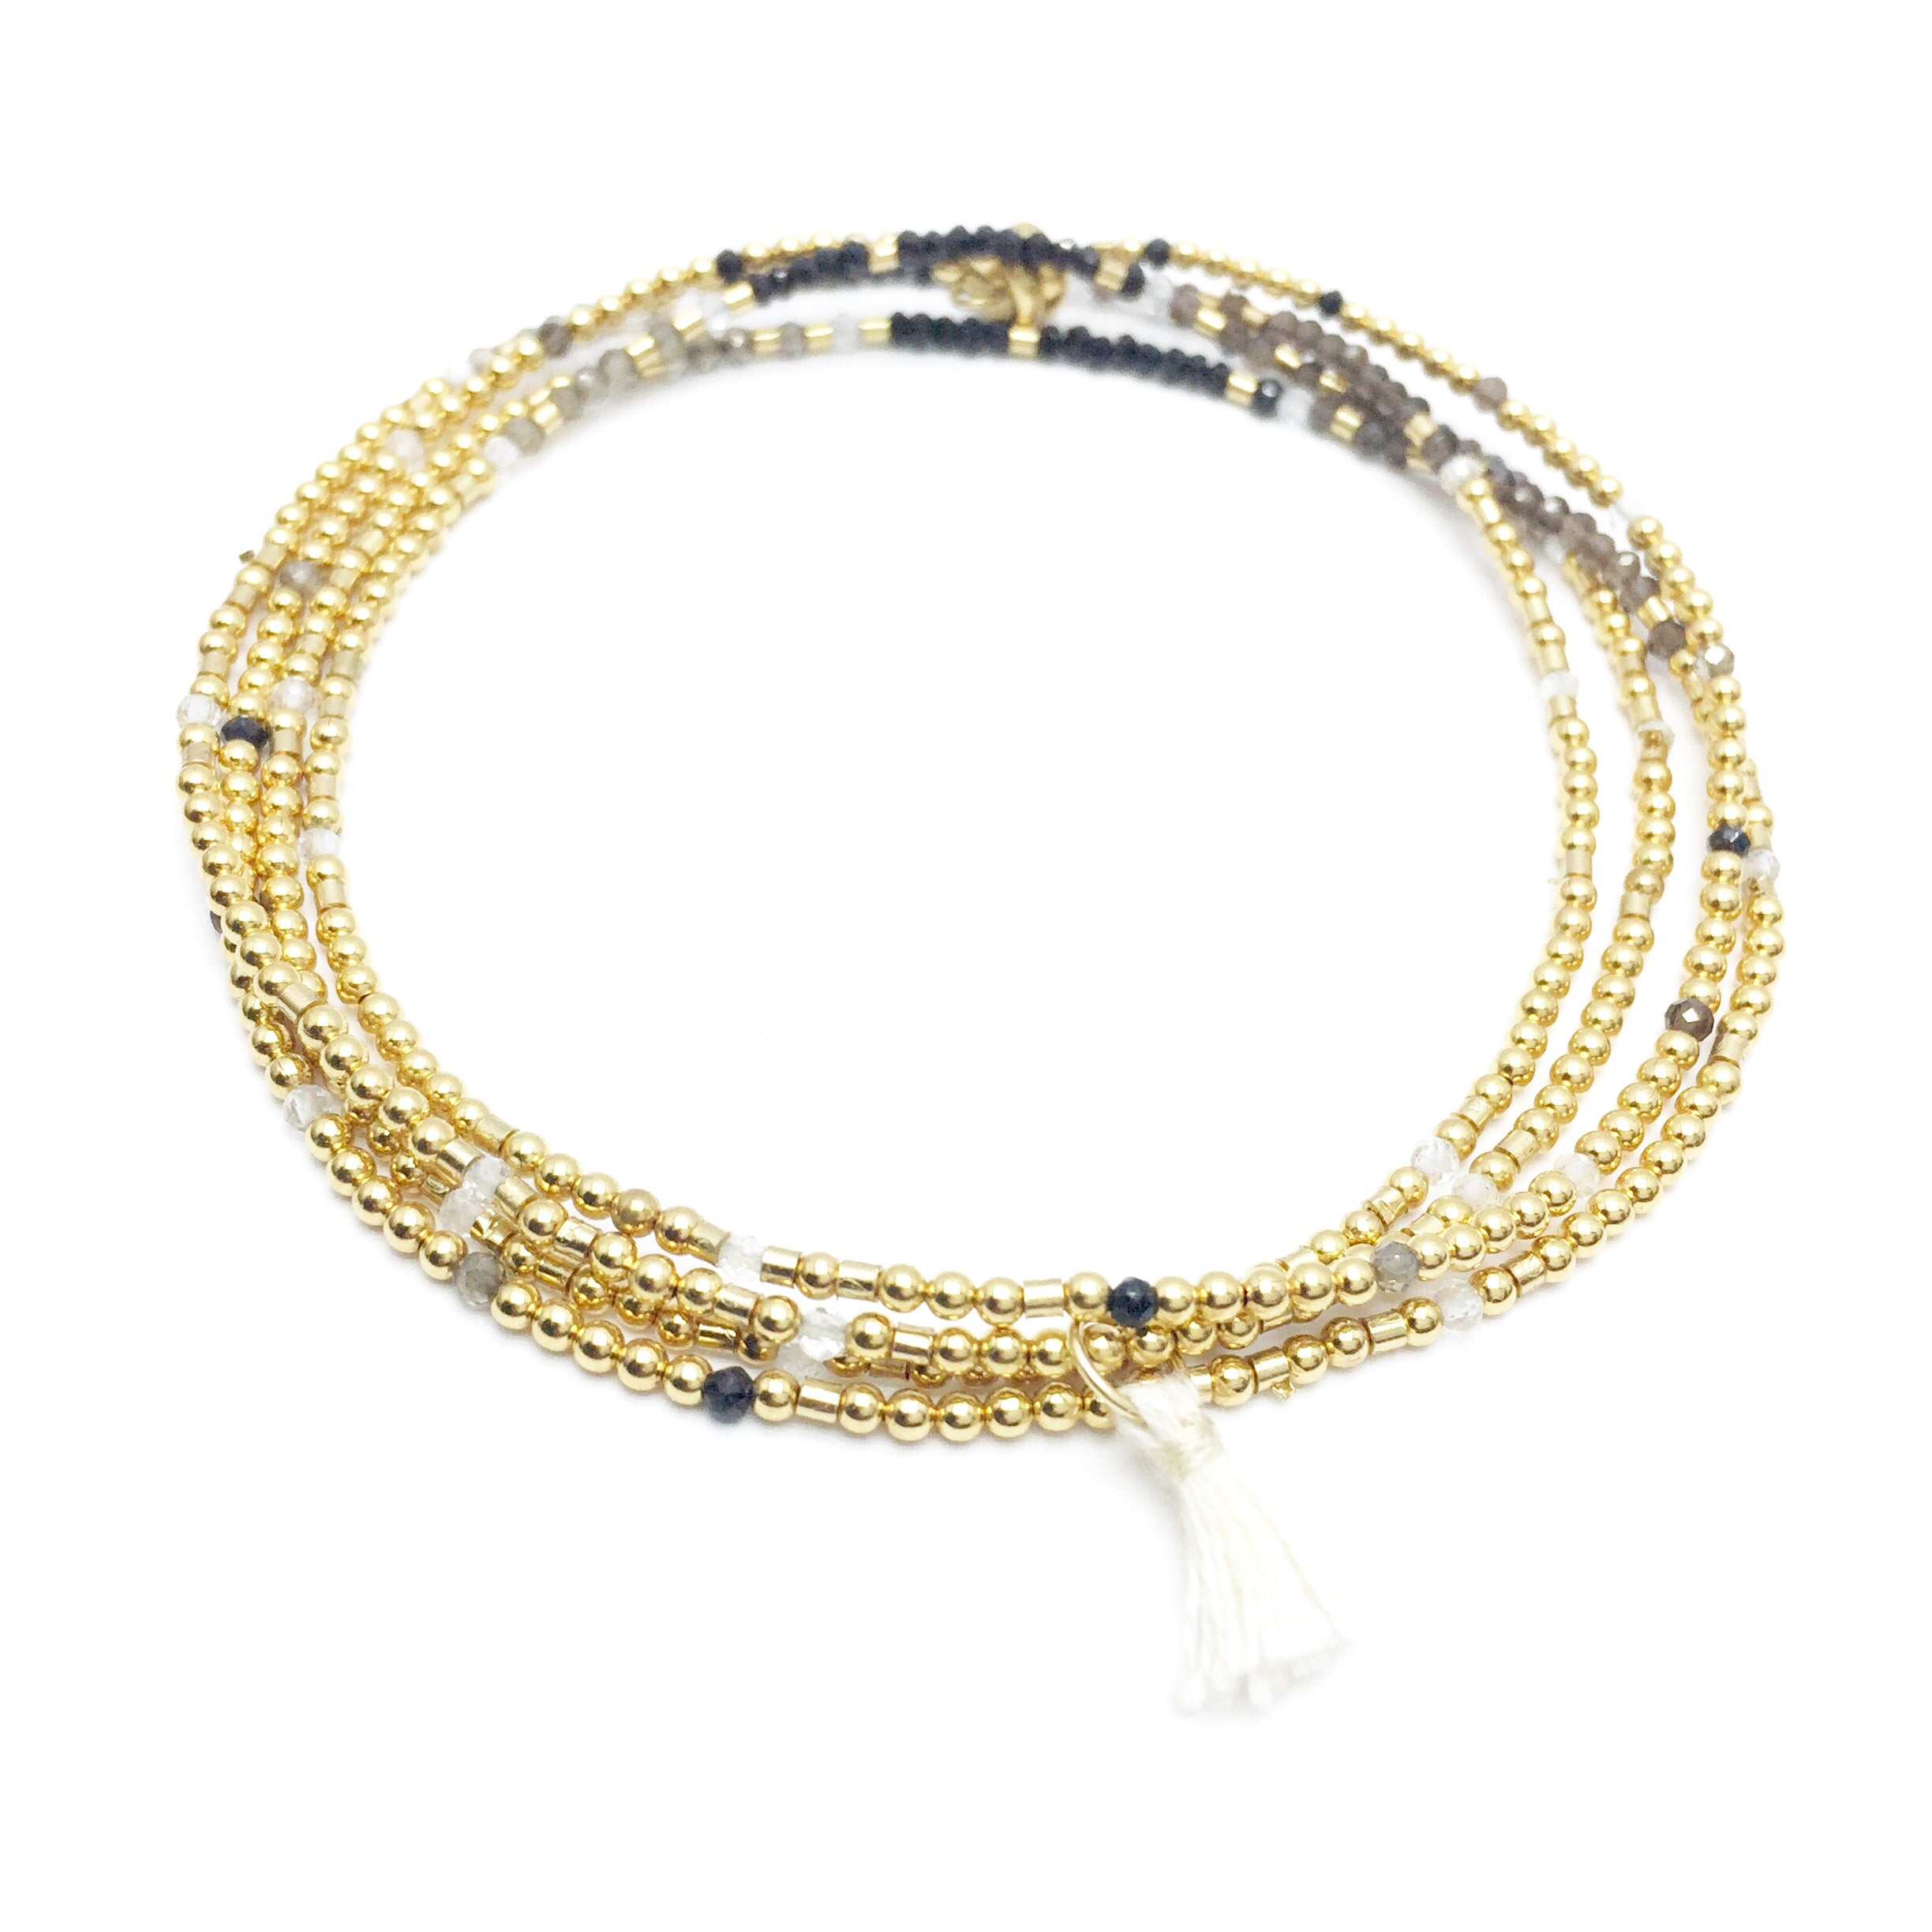 ASK BELIEVE RECEIVE Triple-Wear Morse Code Mala® Necklace